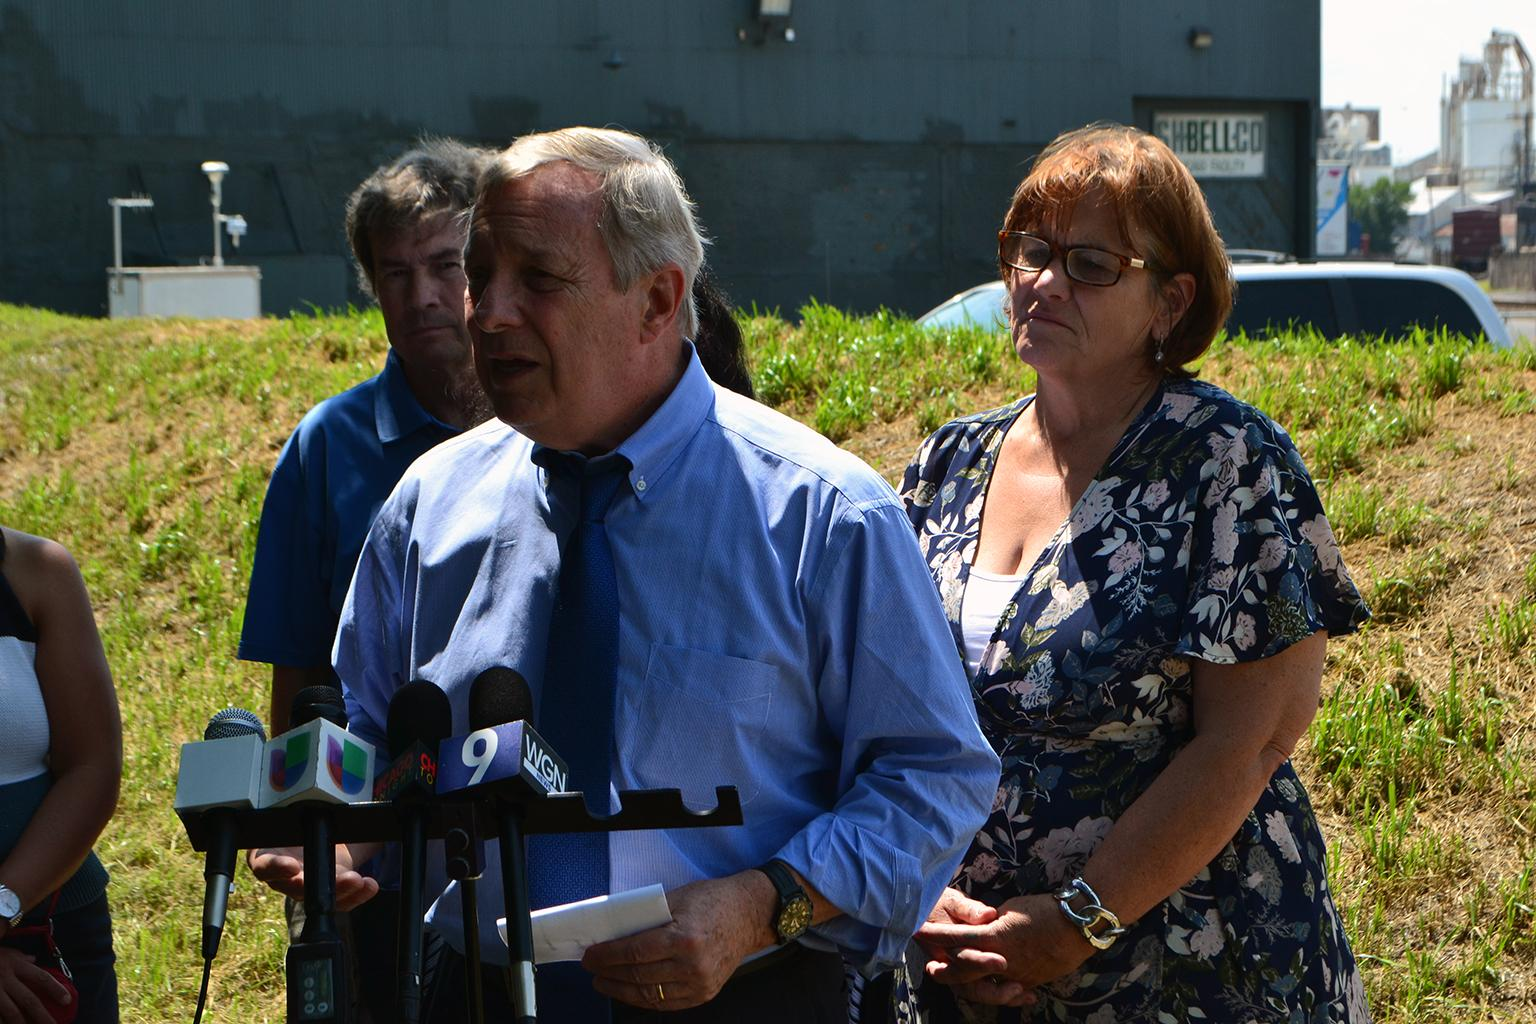 U.S. Sen. Dick Durbin speaks to the press after meeting with Southeast Side residents on Thursday, Aug. 9, 2018 to discuss public health threats stemming from nearby industrial facilities. (Alex Ruppenthal / Chicago Tonight)